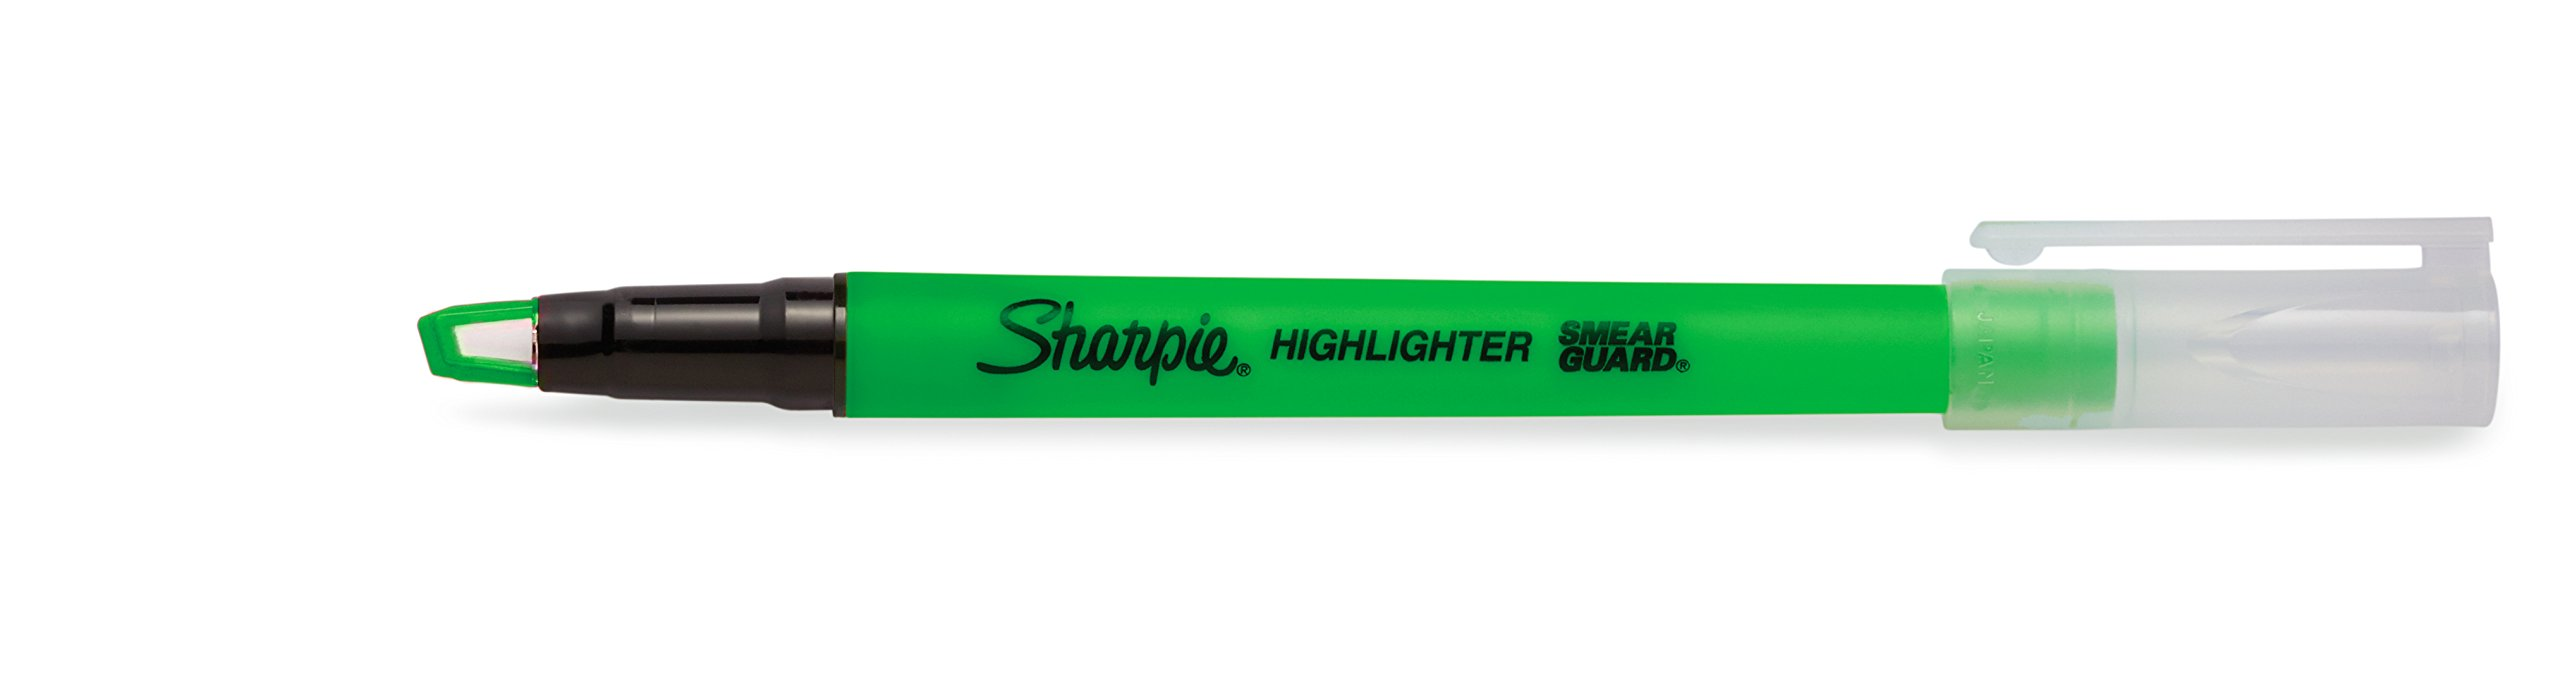 Sharpie Clear View Highlighter Stick, Assorted, 8 Pack (1966798) by Sharpie (Image #14)